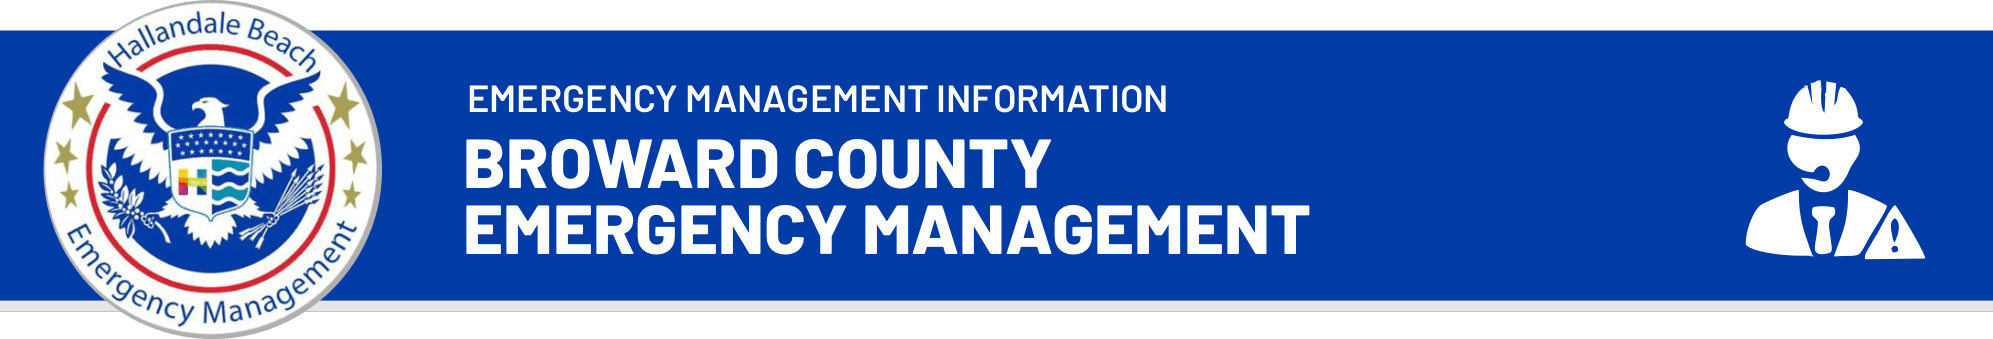 Broward County Emergency Management